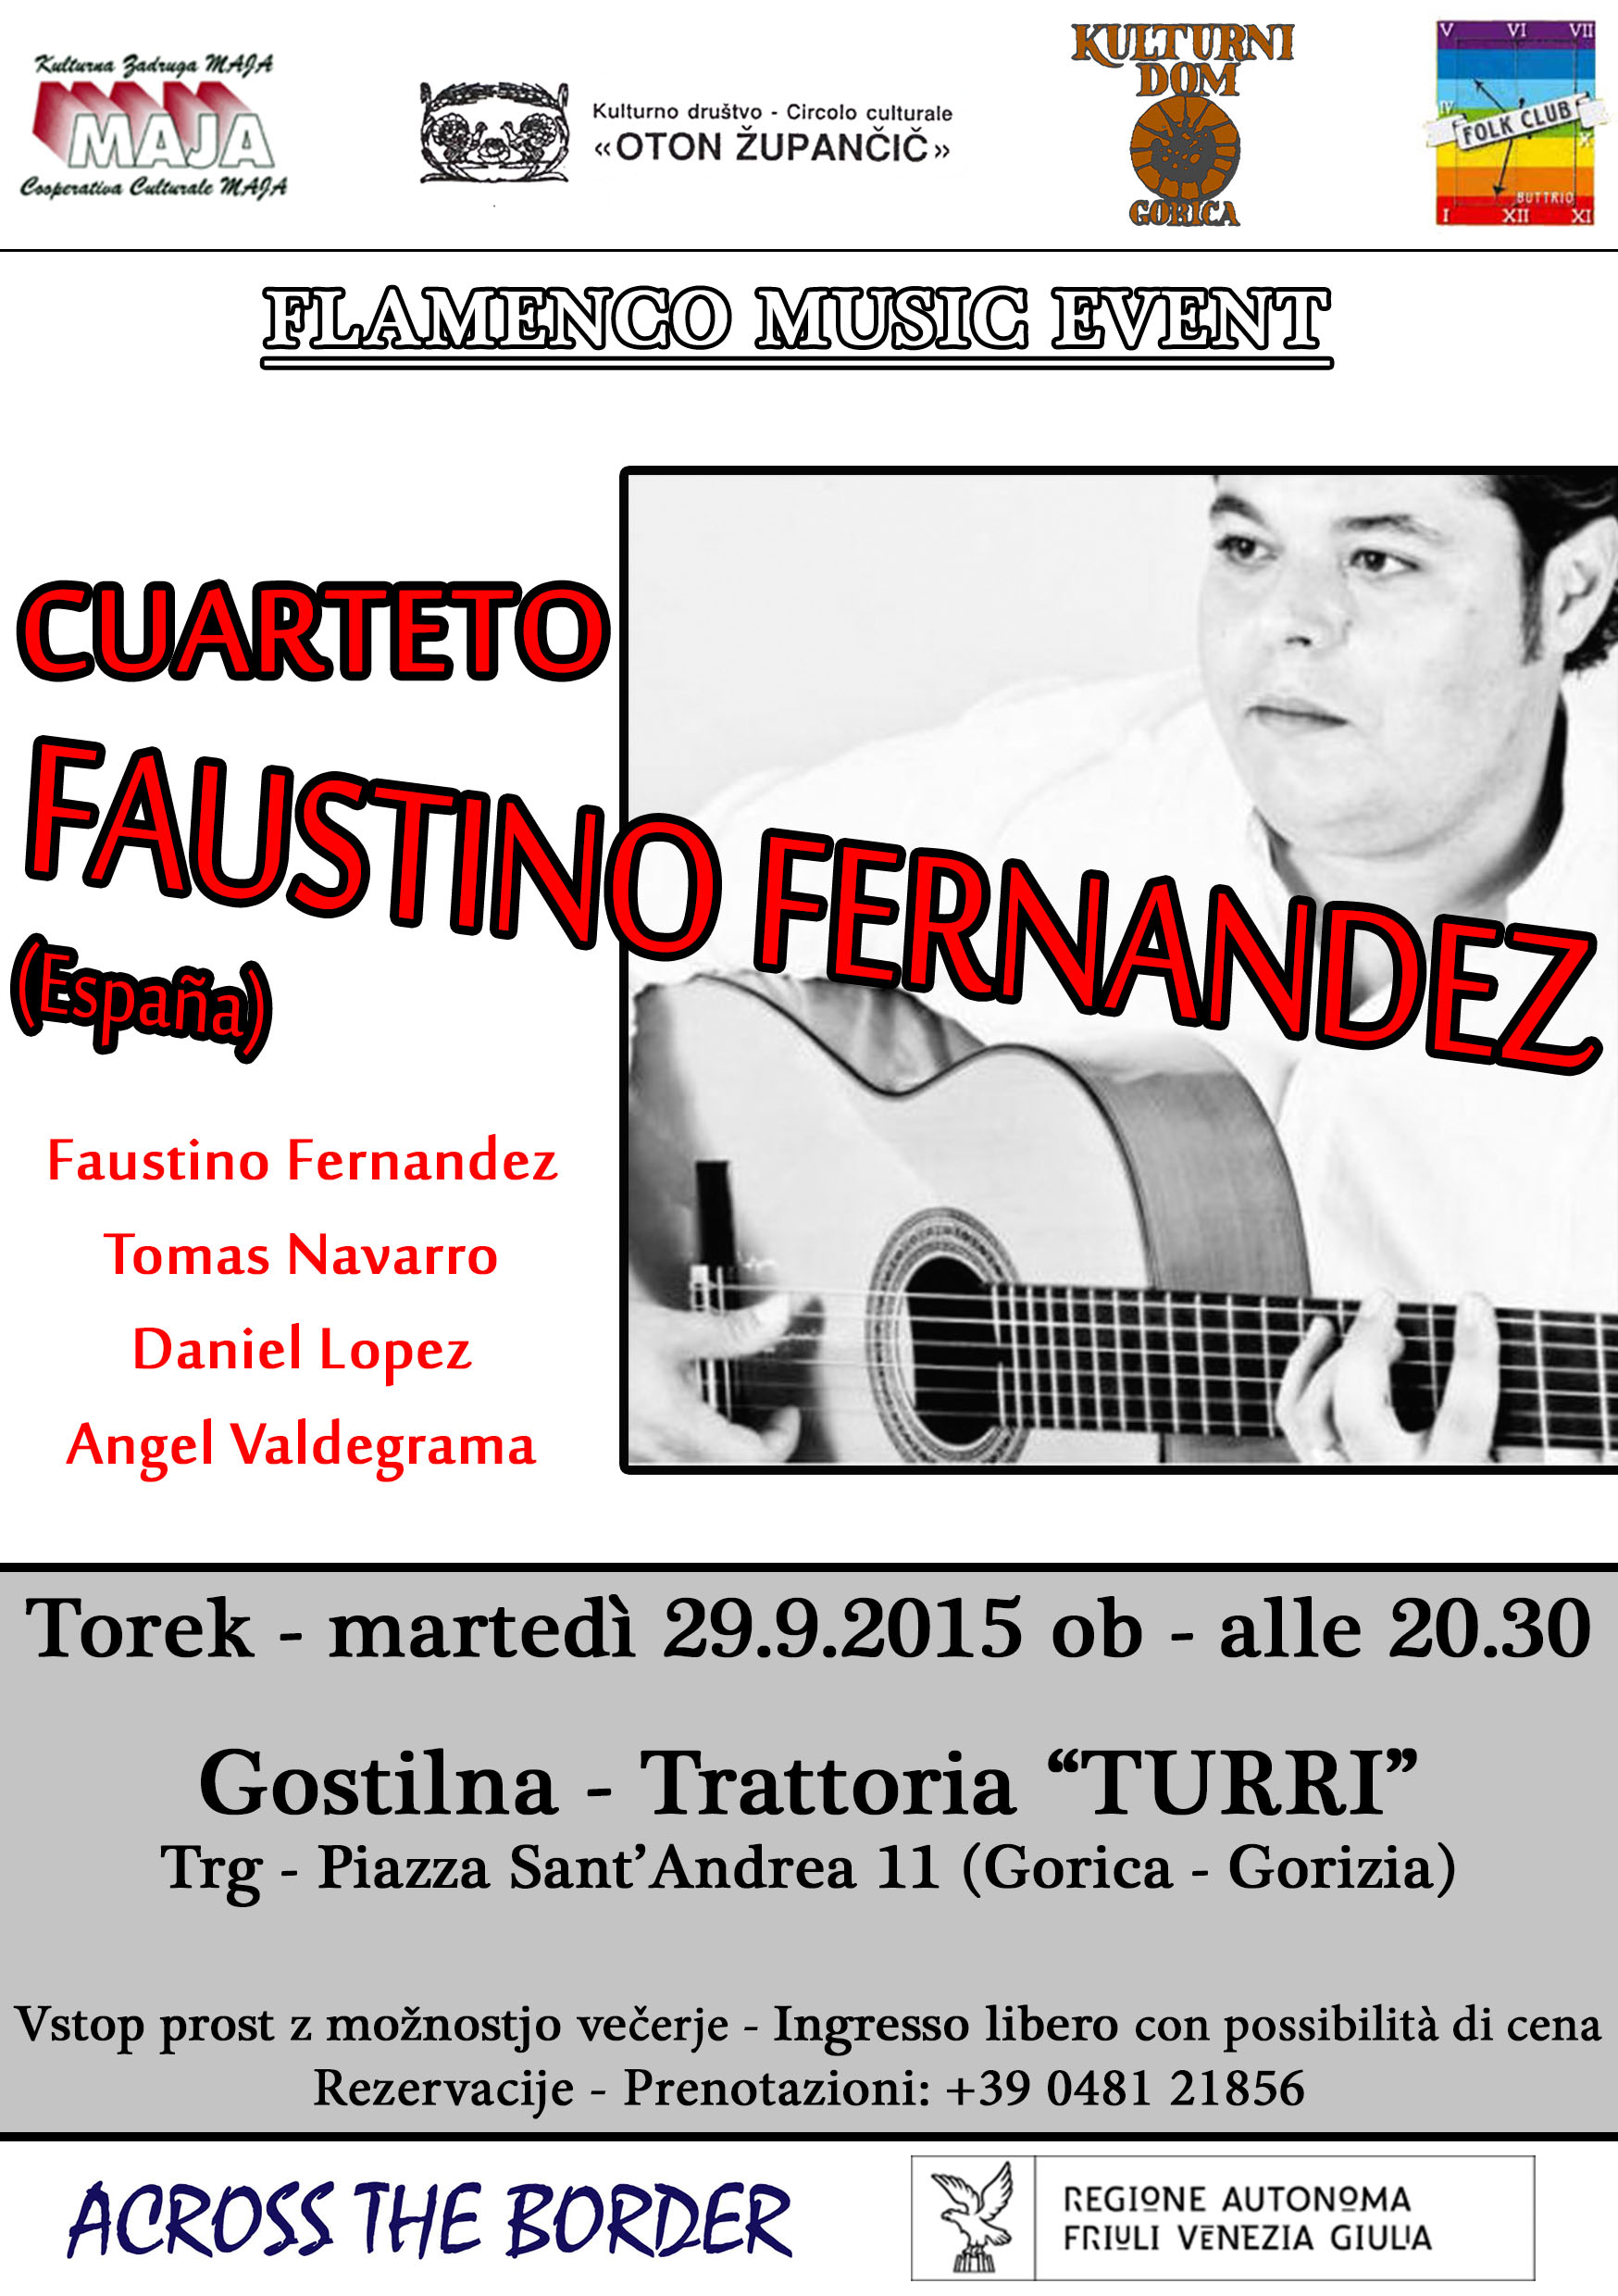 CUARTETO FAUSTINO FERNANDEZ - Across the Border